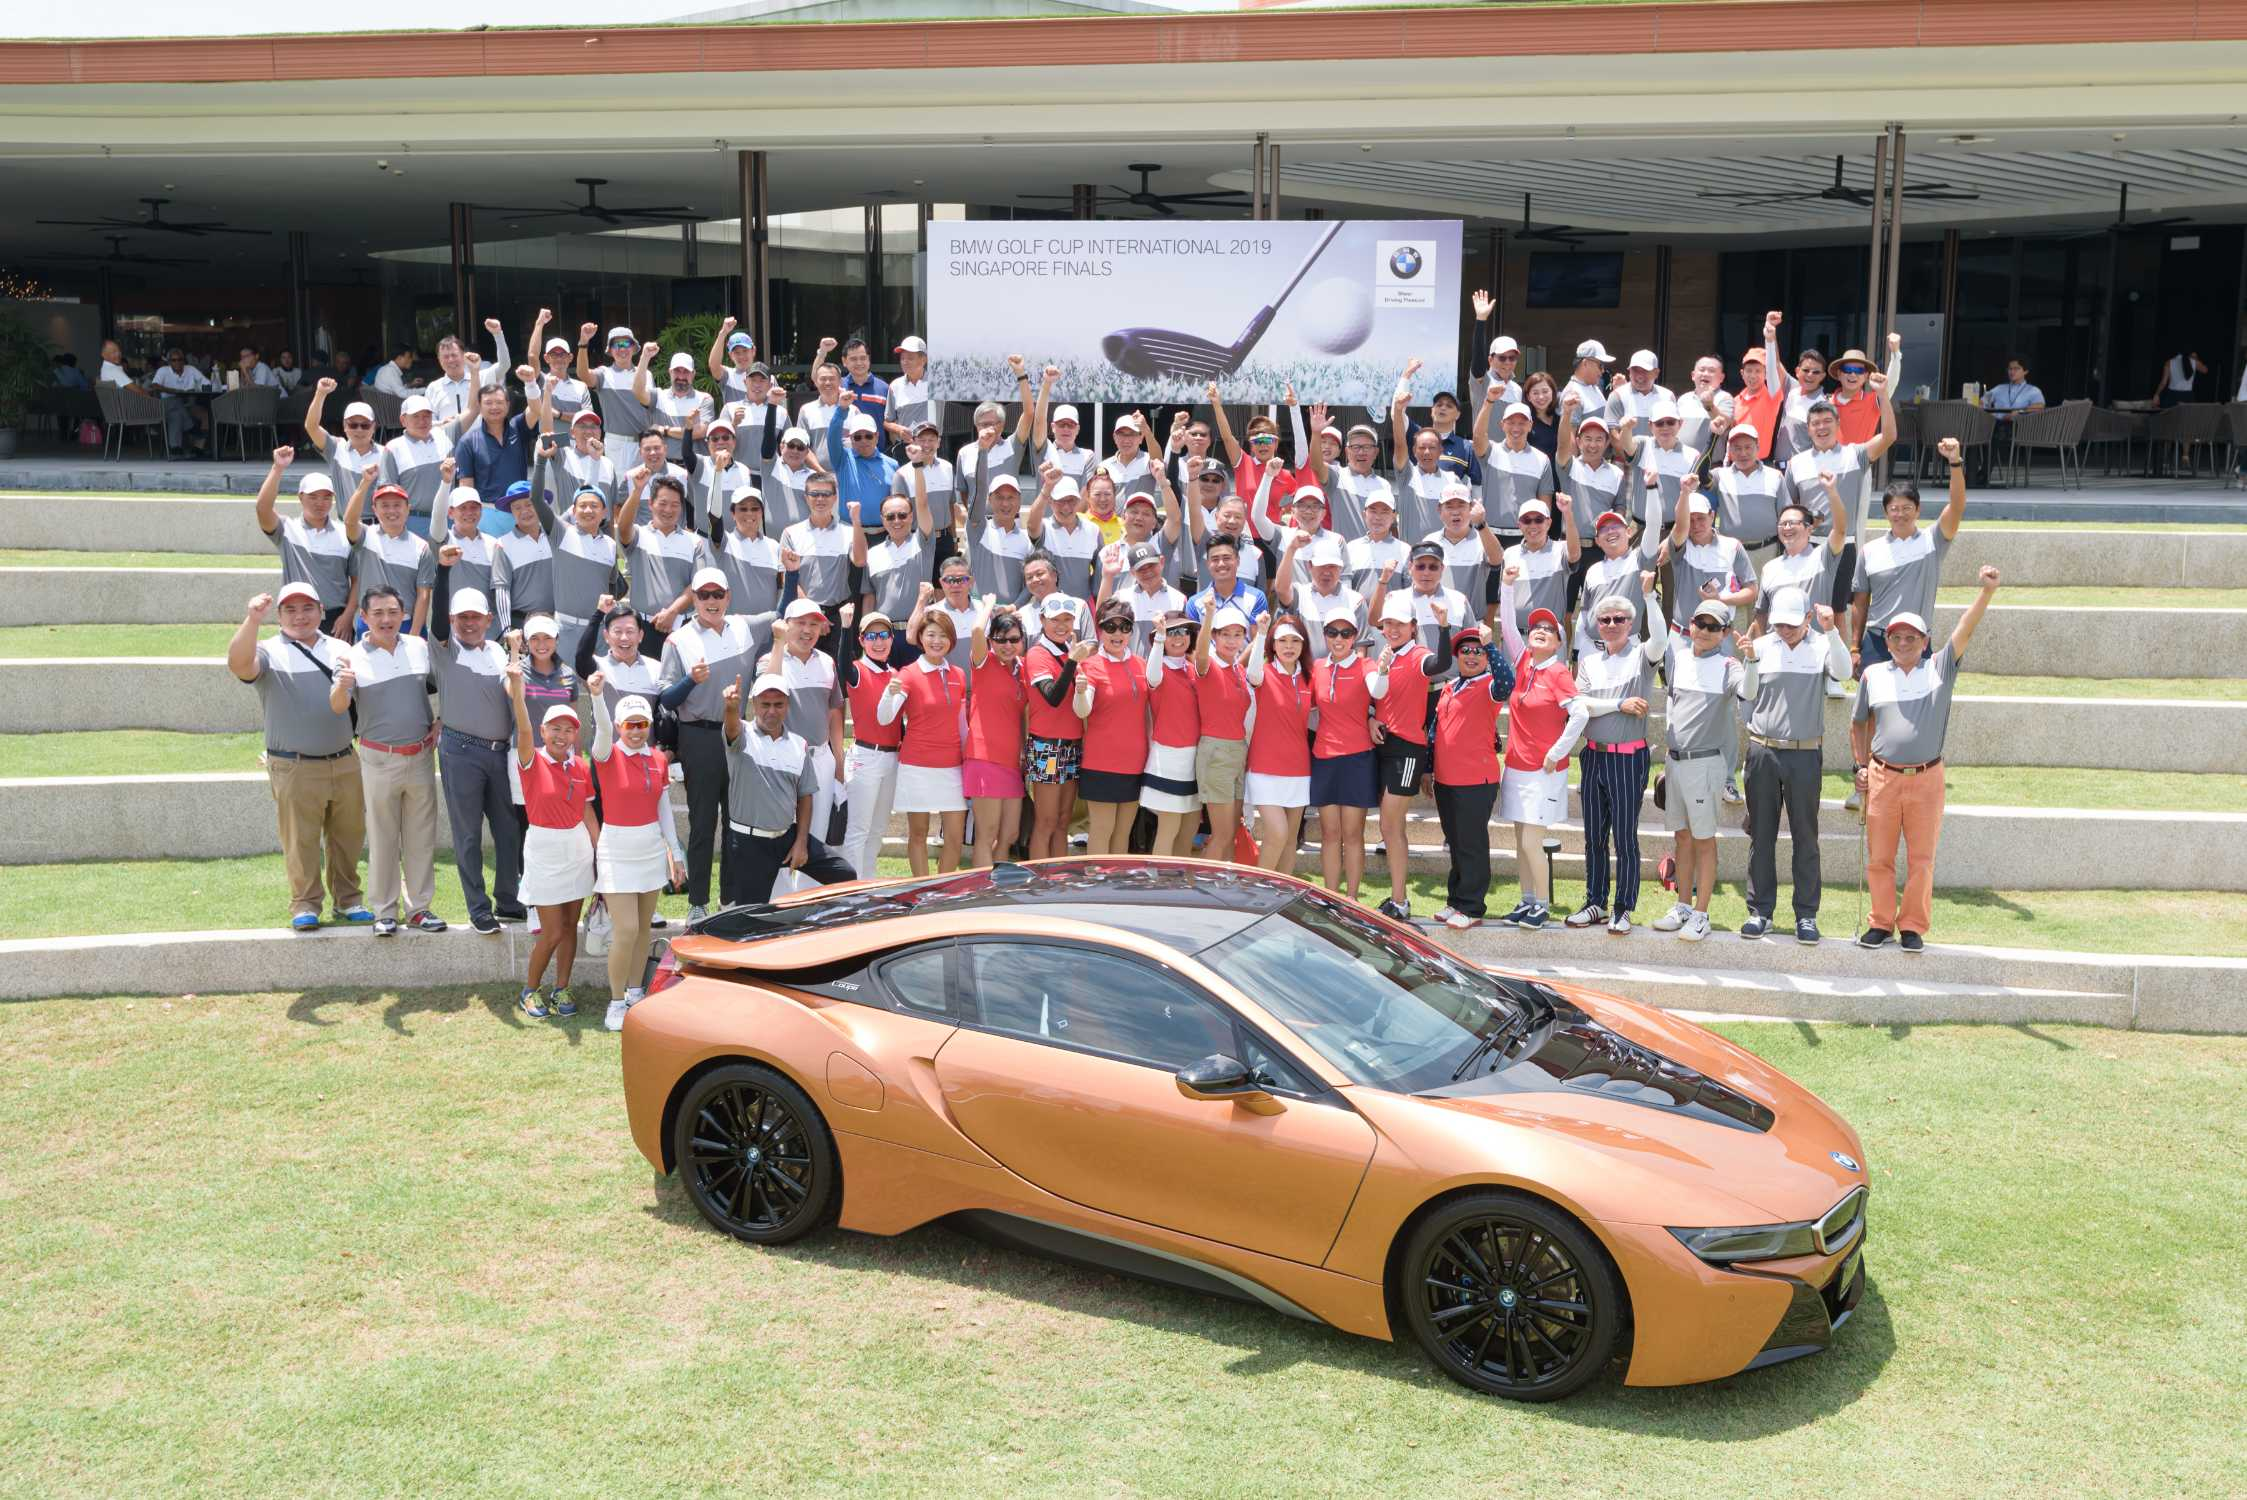 Bmw Golf Cup International 2019 Singapore Winners To Compete At World Final In South Africa